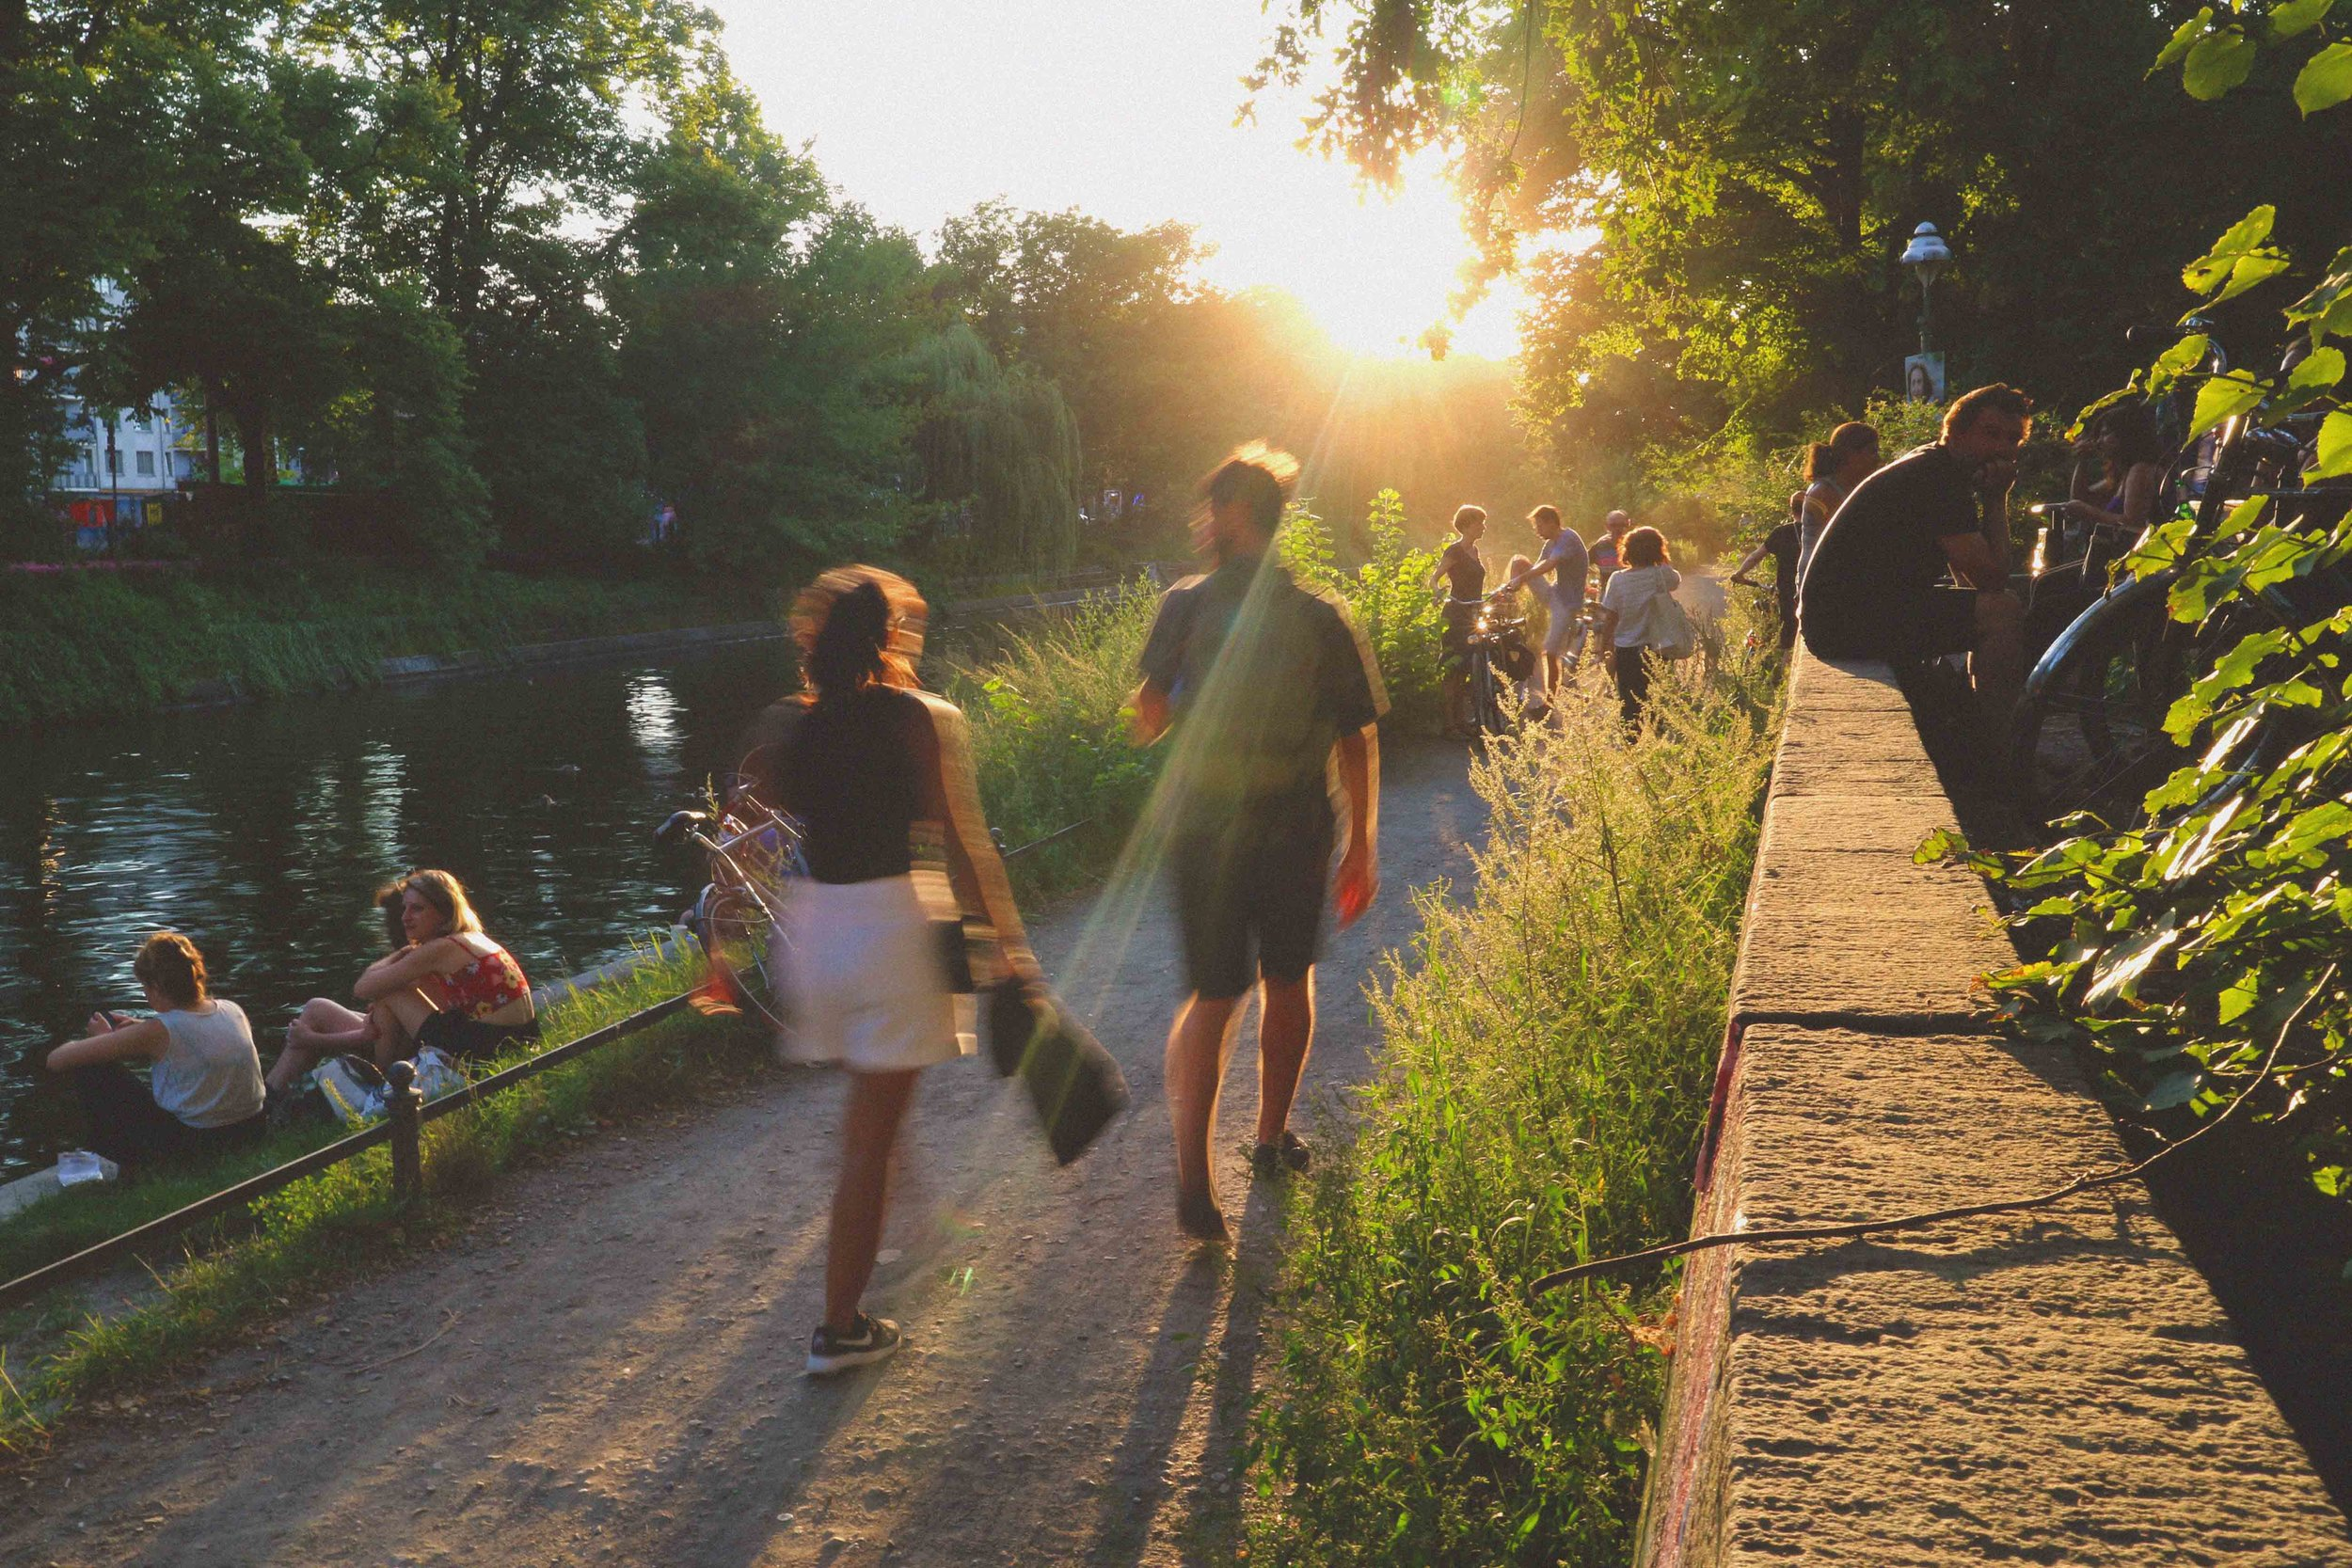 Berliners' using every inch of the canal